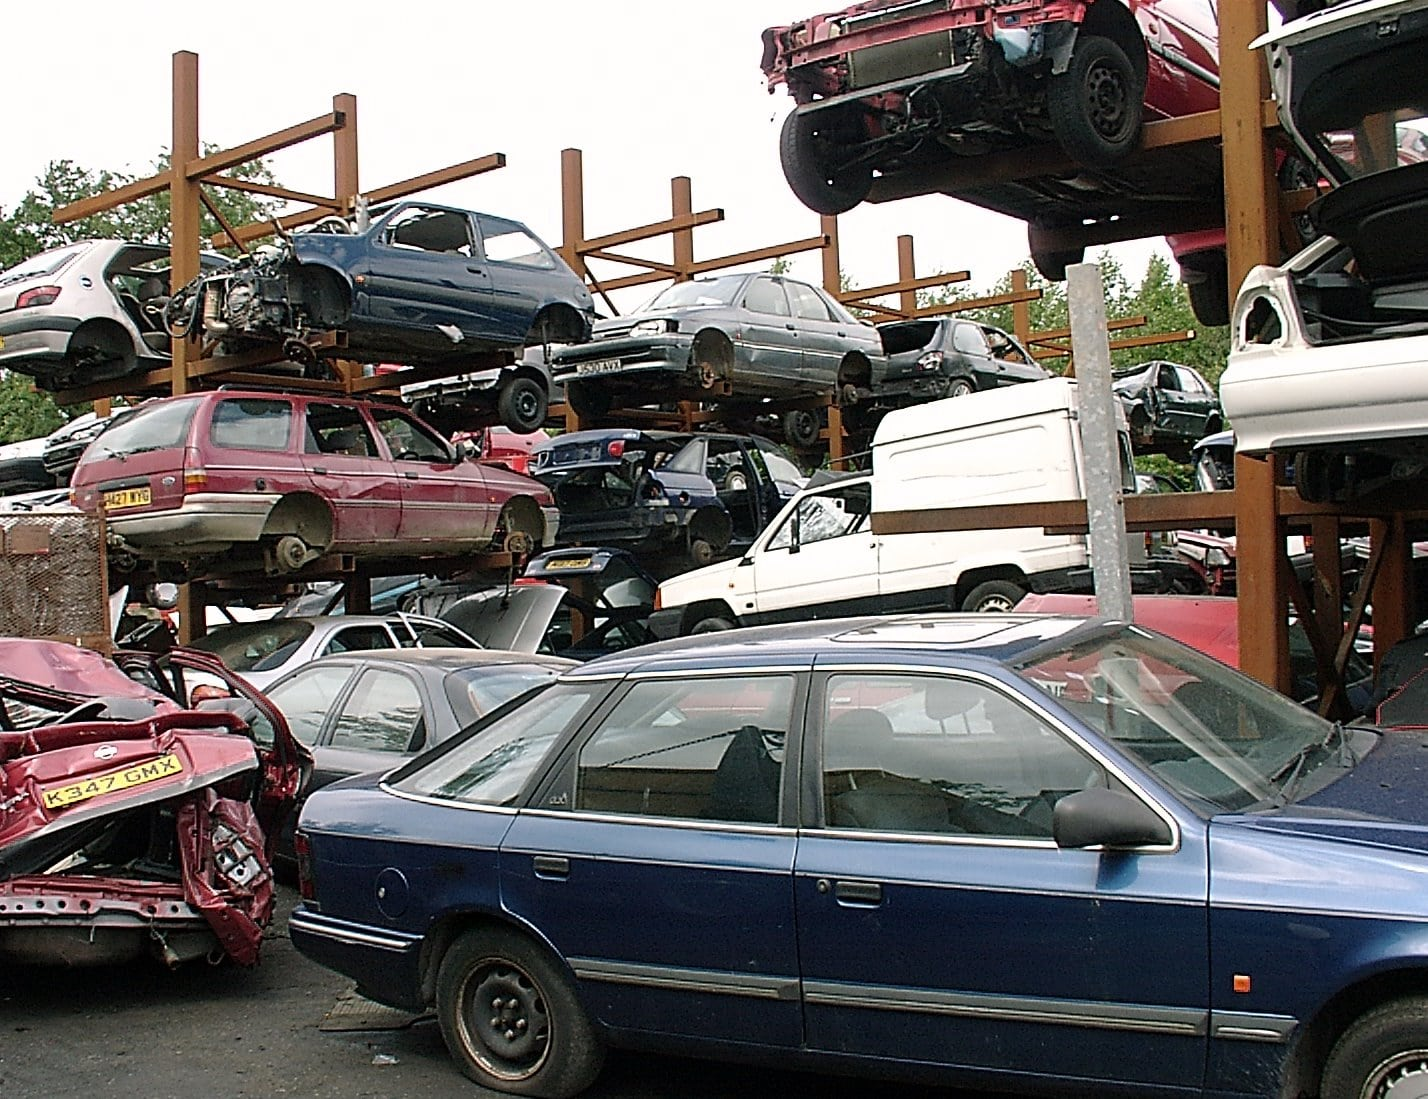 What Are Your Options if You Want to Get Rid of Your Car - CarNewsCafe